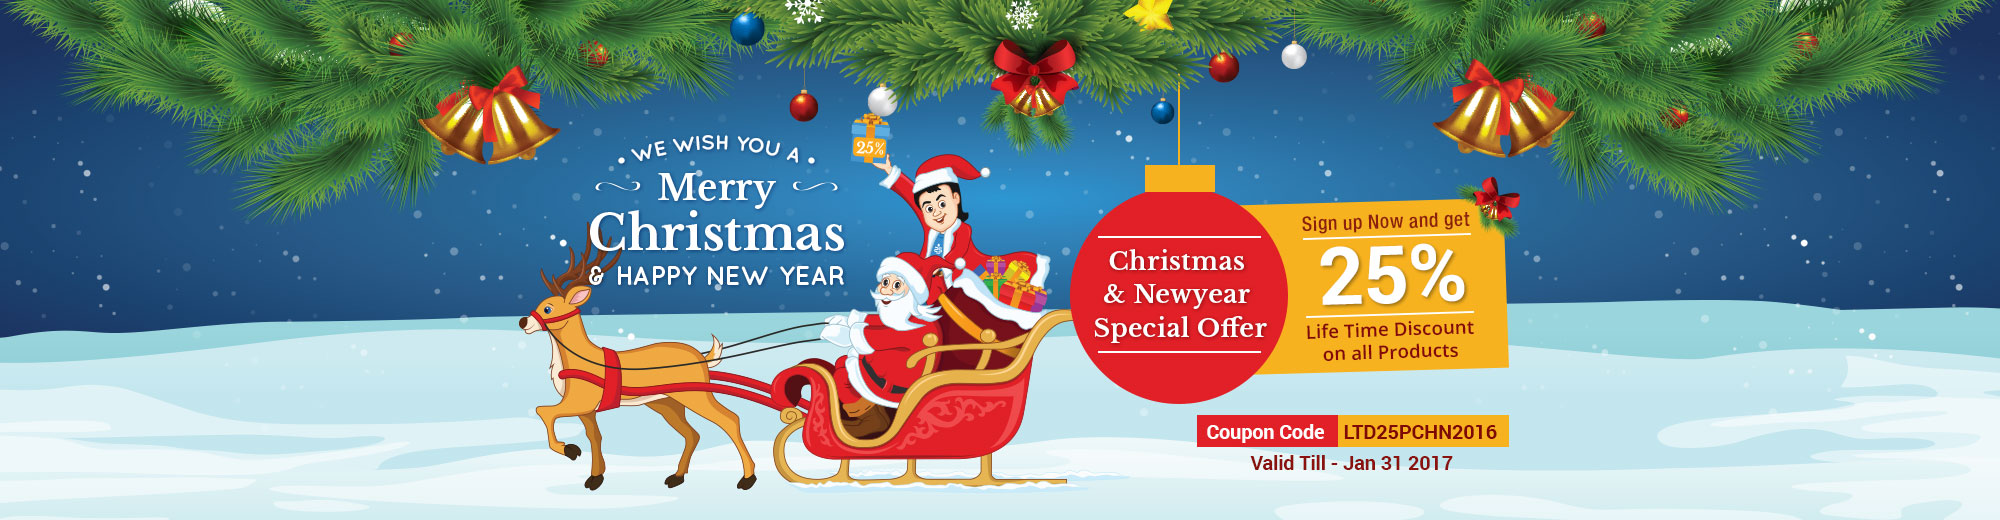 Christmas and New year Special Offer – 25% Life Time Discount on all Plans